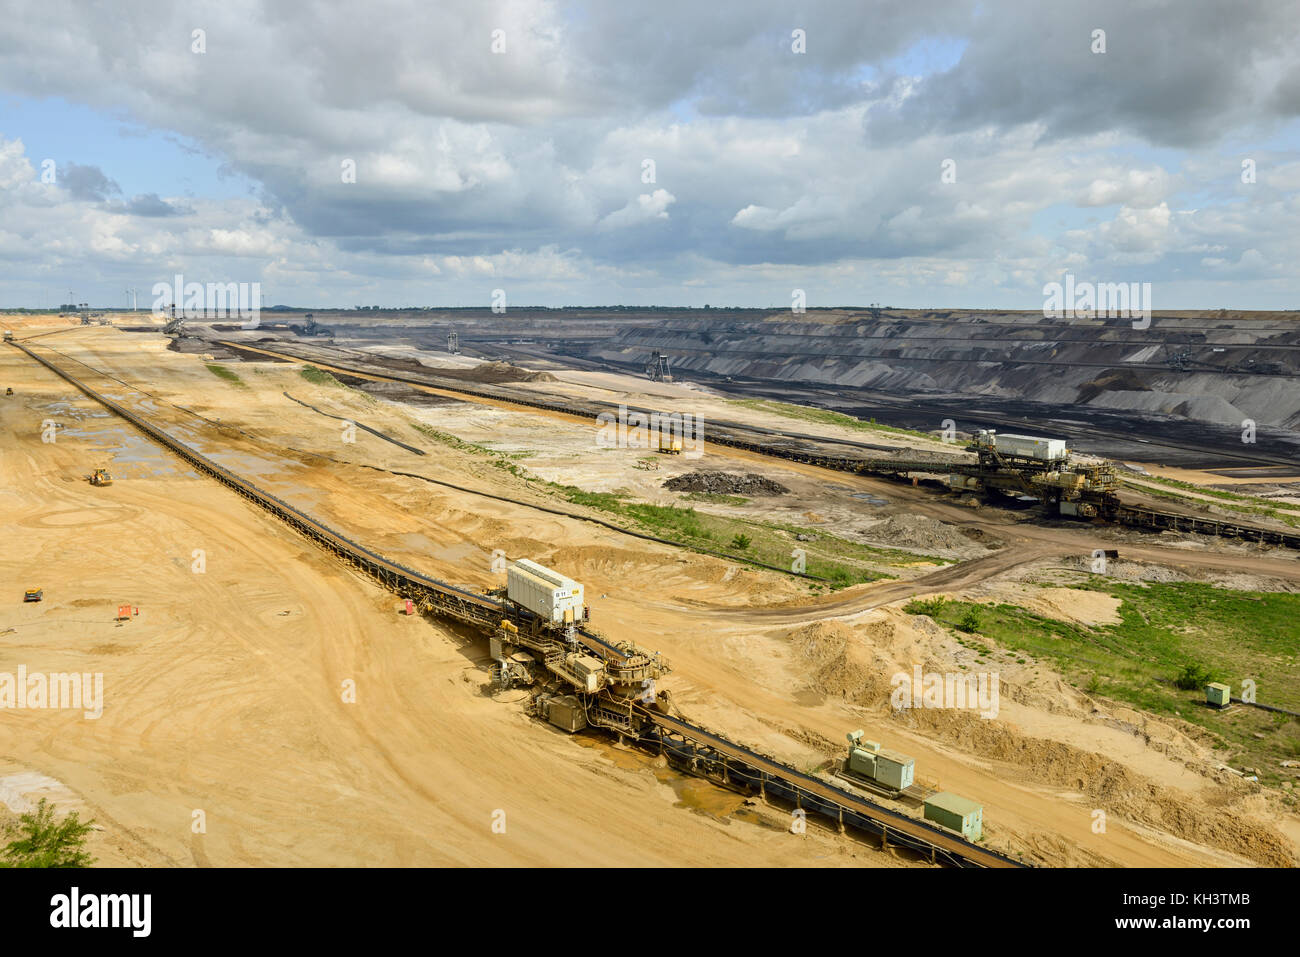 Parts of Garzweiler surface mine, RWE Power, shot from observation deck Jackerath viewpoint, view into the opencast - Stock Image